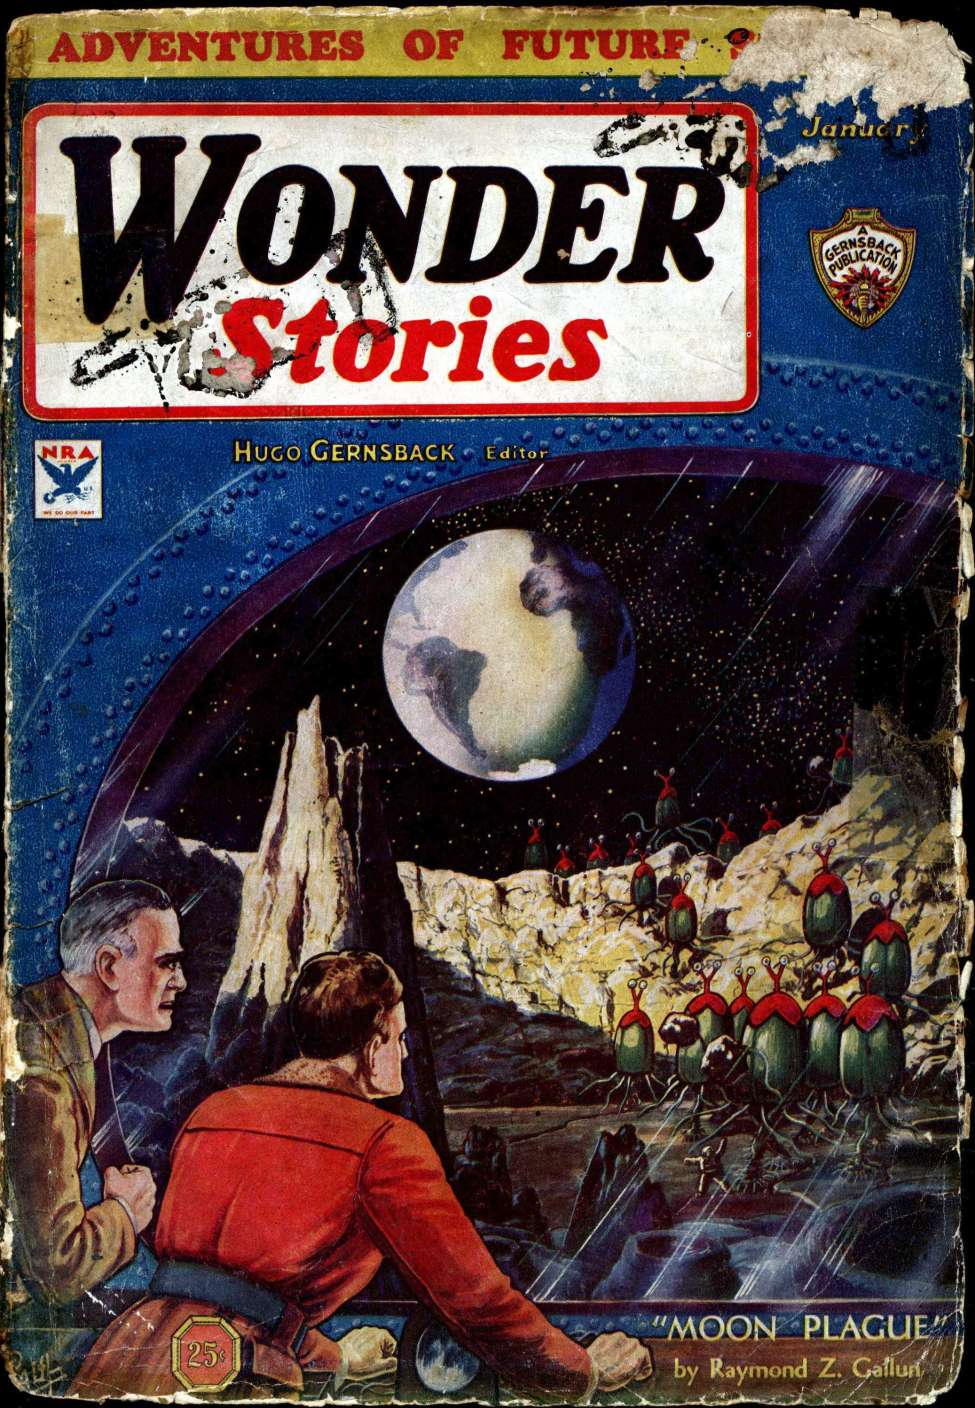 Comic Book Cover For Wonder Stories v5 06 - The Exile of the Skies - Richard Vaughan